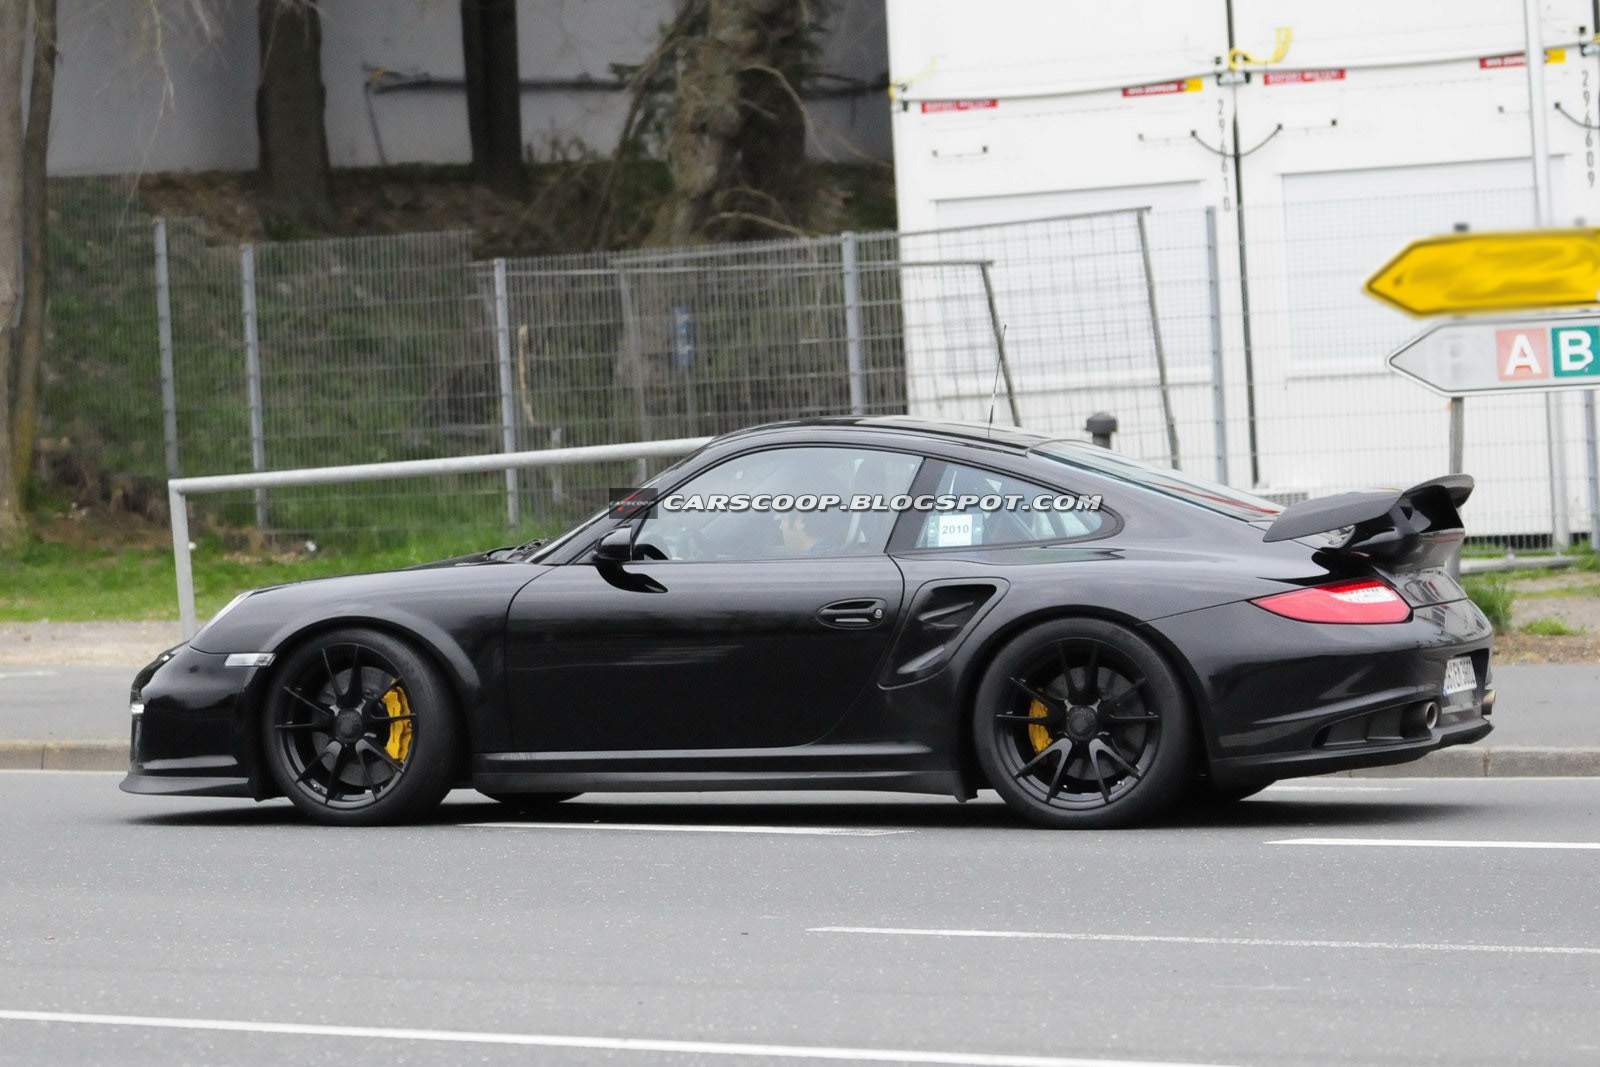 spy shots new hardcore porsche 911 gt2 rs could get 600hp photos. Black Bedroom Furniture Sets. Home Design Ideas